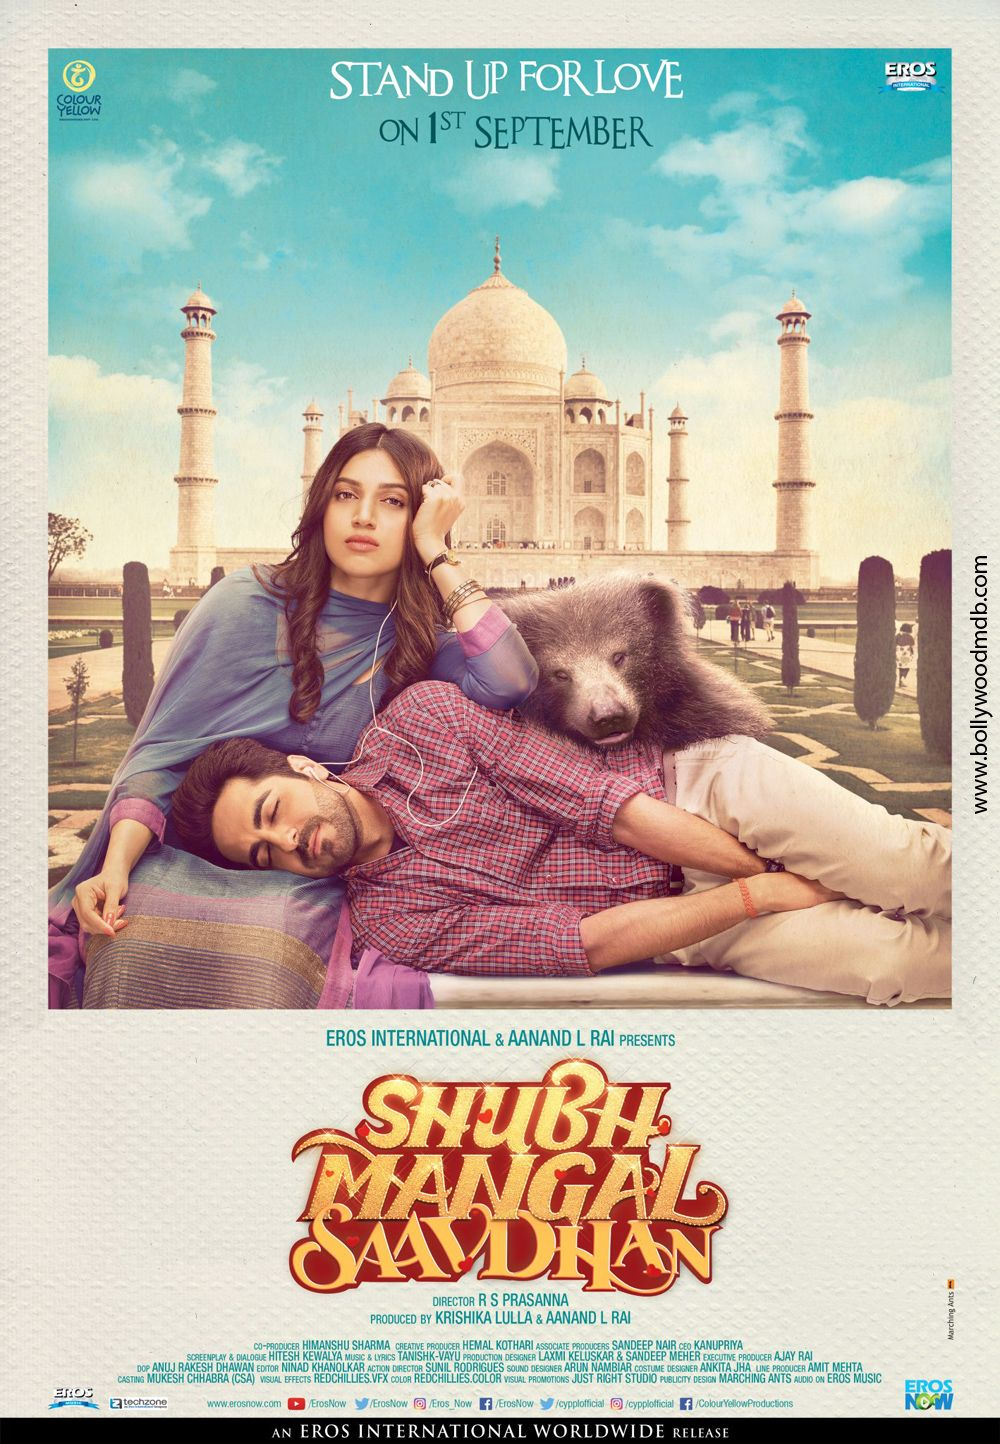 Shubh Mangal Savdhan Izle Shubh Mangal Savdhan 1080p Izle Shubh Mangal Saavdhan Film Izle Shubh Manga Full Movies Download Bollywood Posters Download Movies